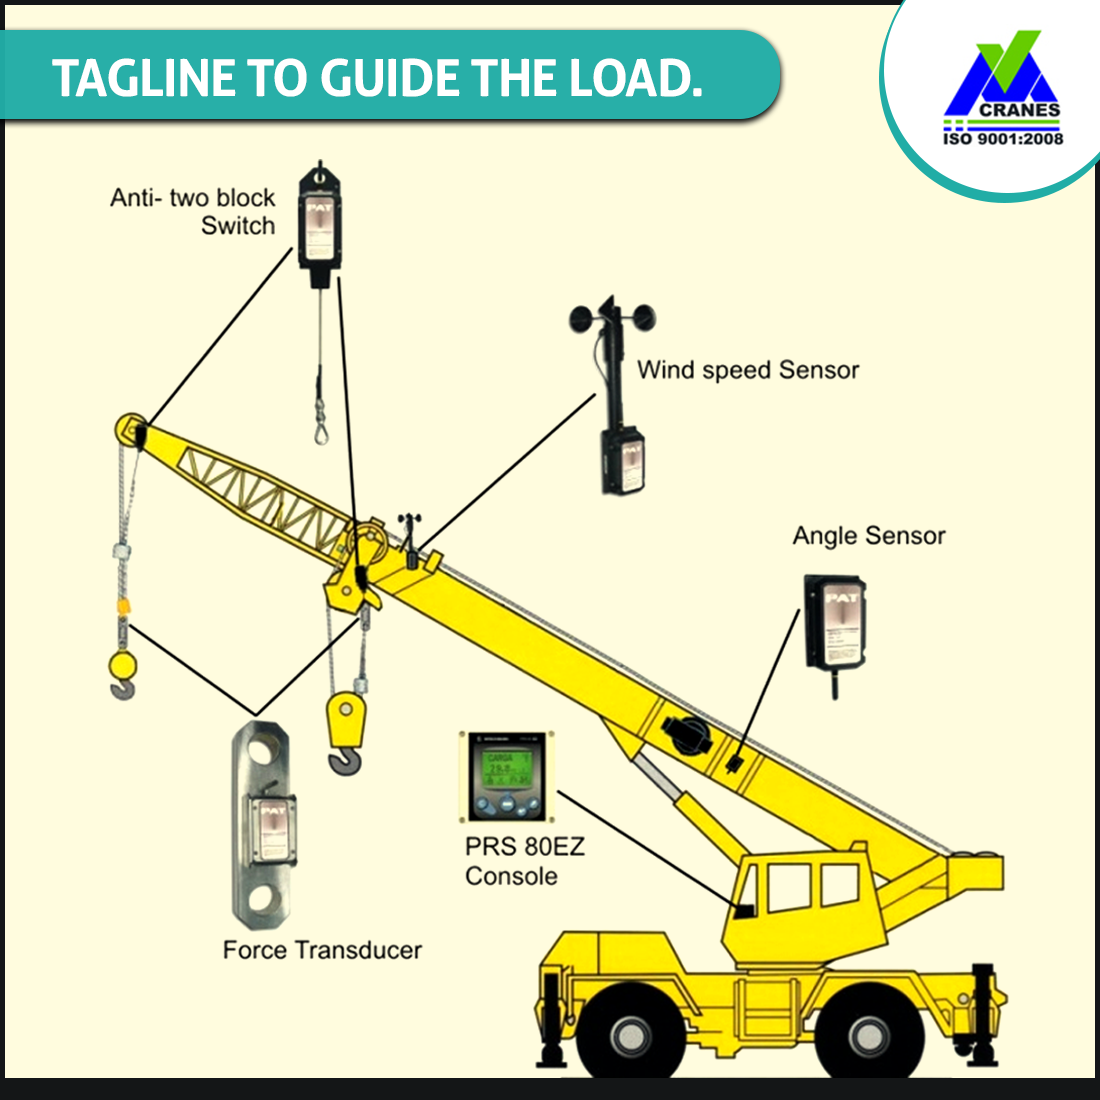 hight resolution of usage of tagline to guide the load load to be handled smoothly cranessafety safetyguide motivation vmecranes vmengineers